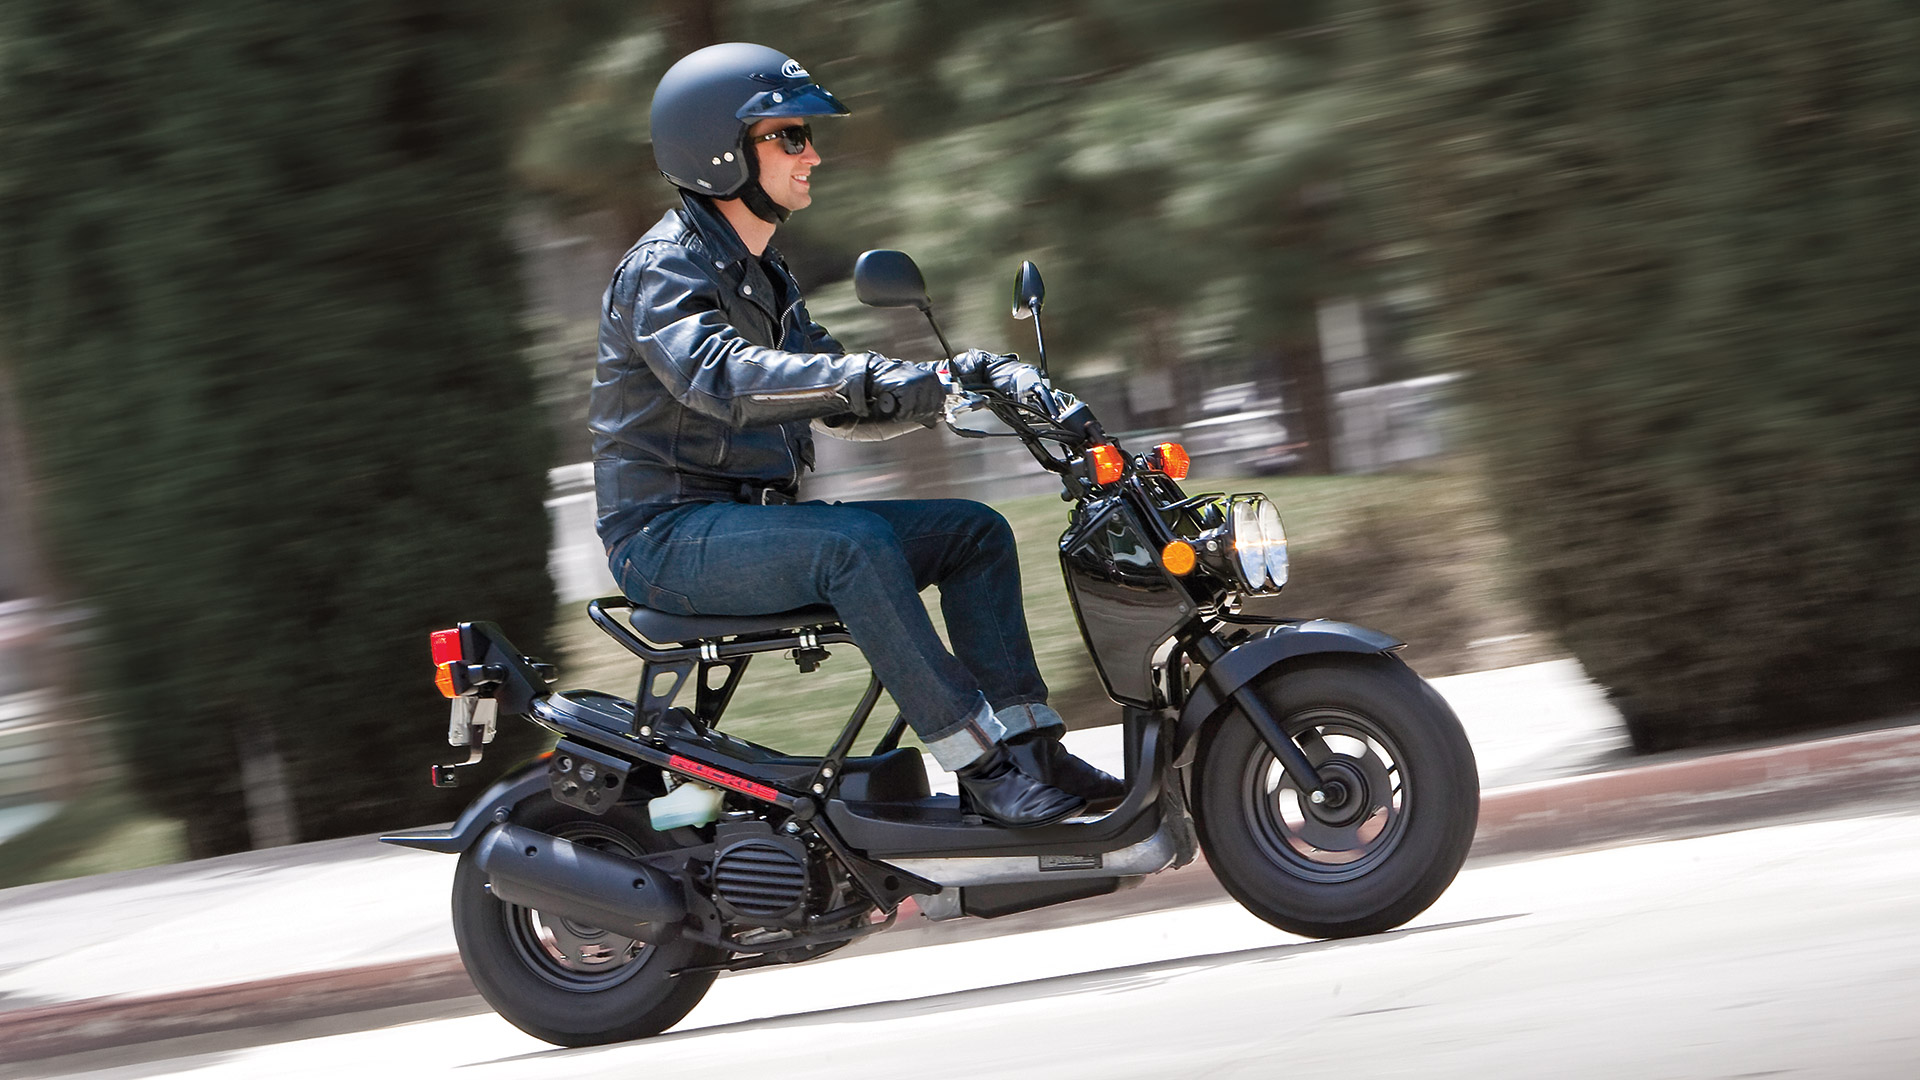 2015 - 2019 Honda Ruckus | Top Speed